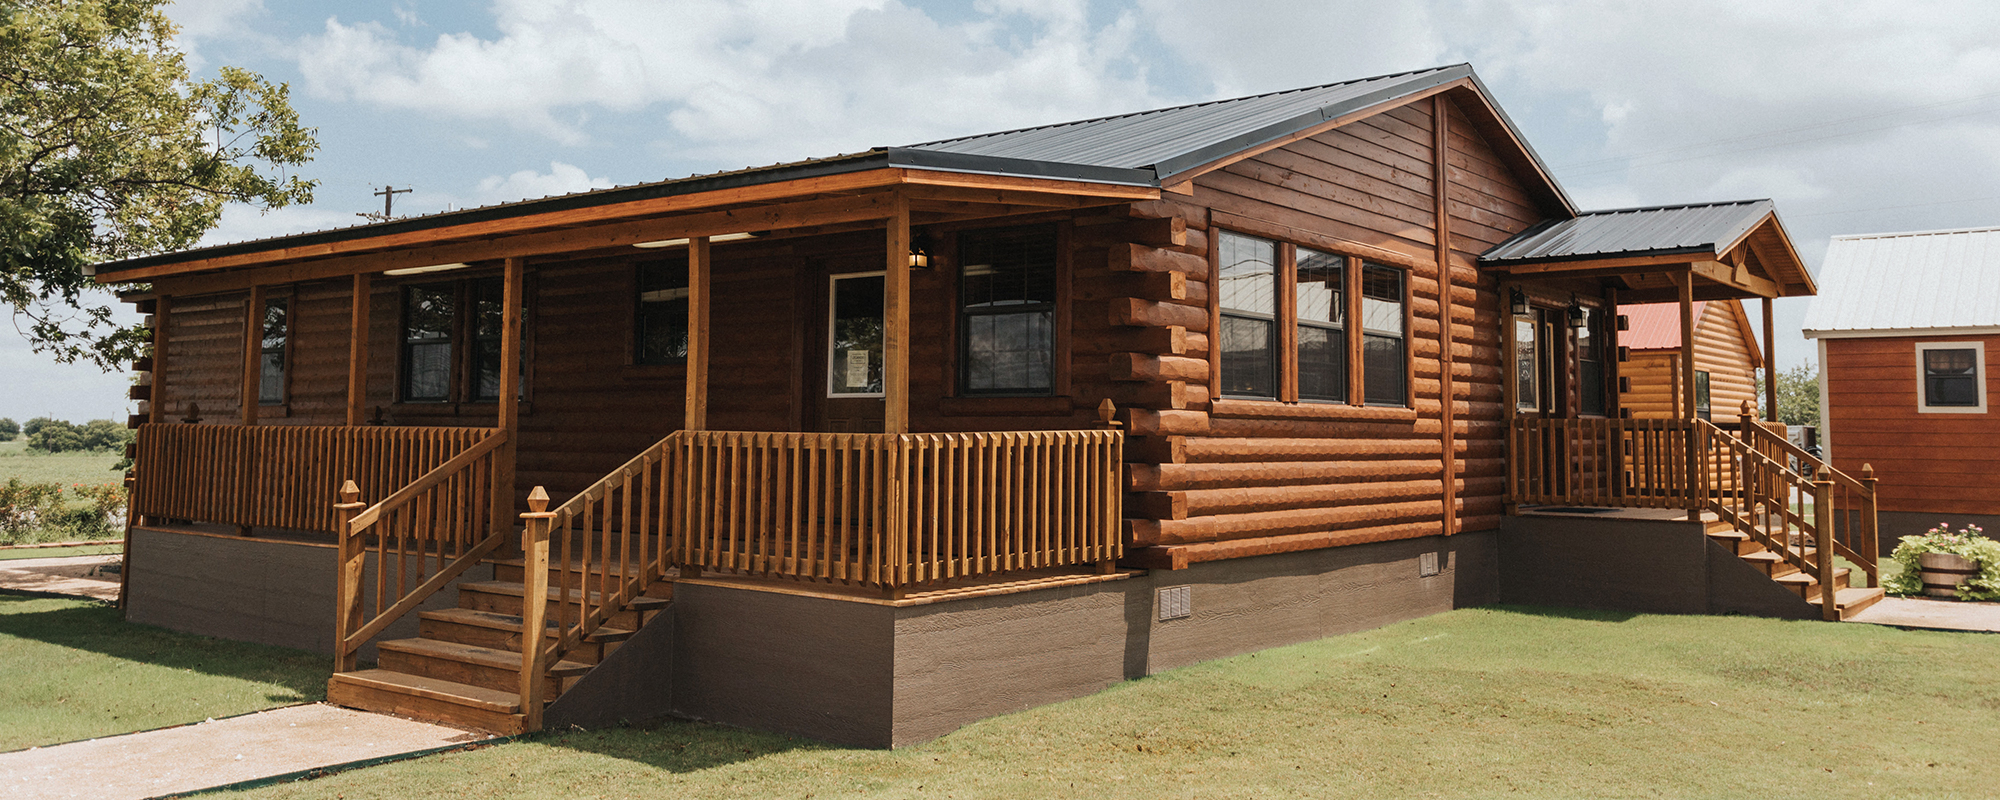 Sheds Cabins Carports Rv Covers Metal Buildings